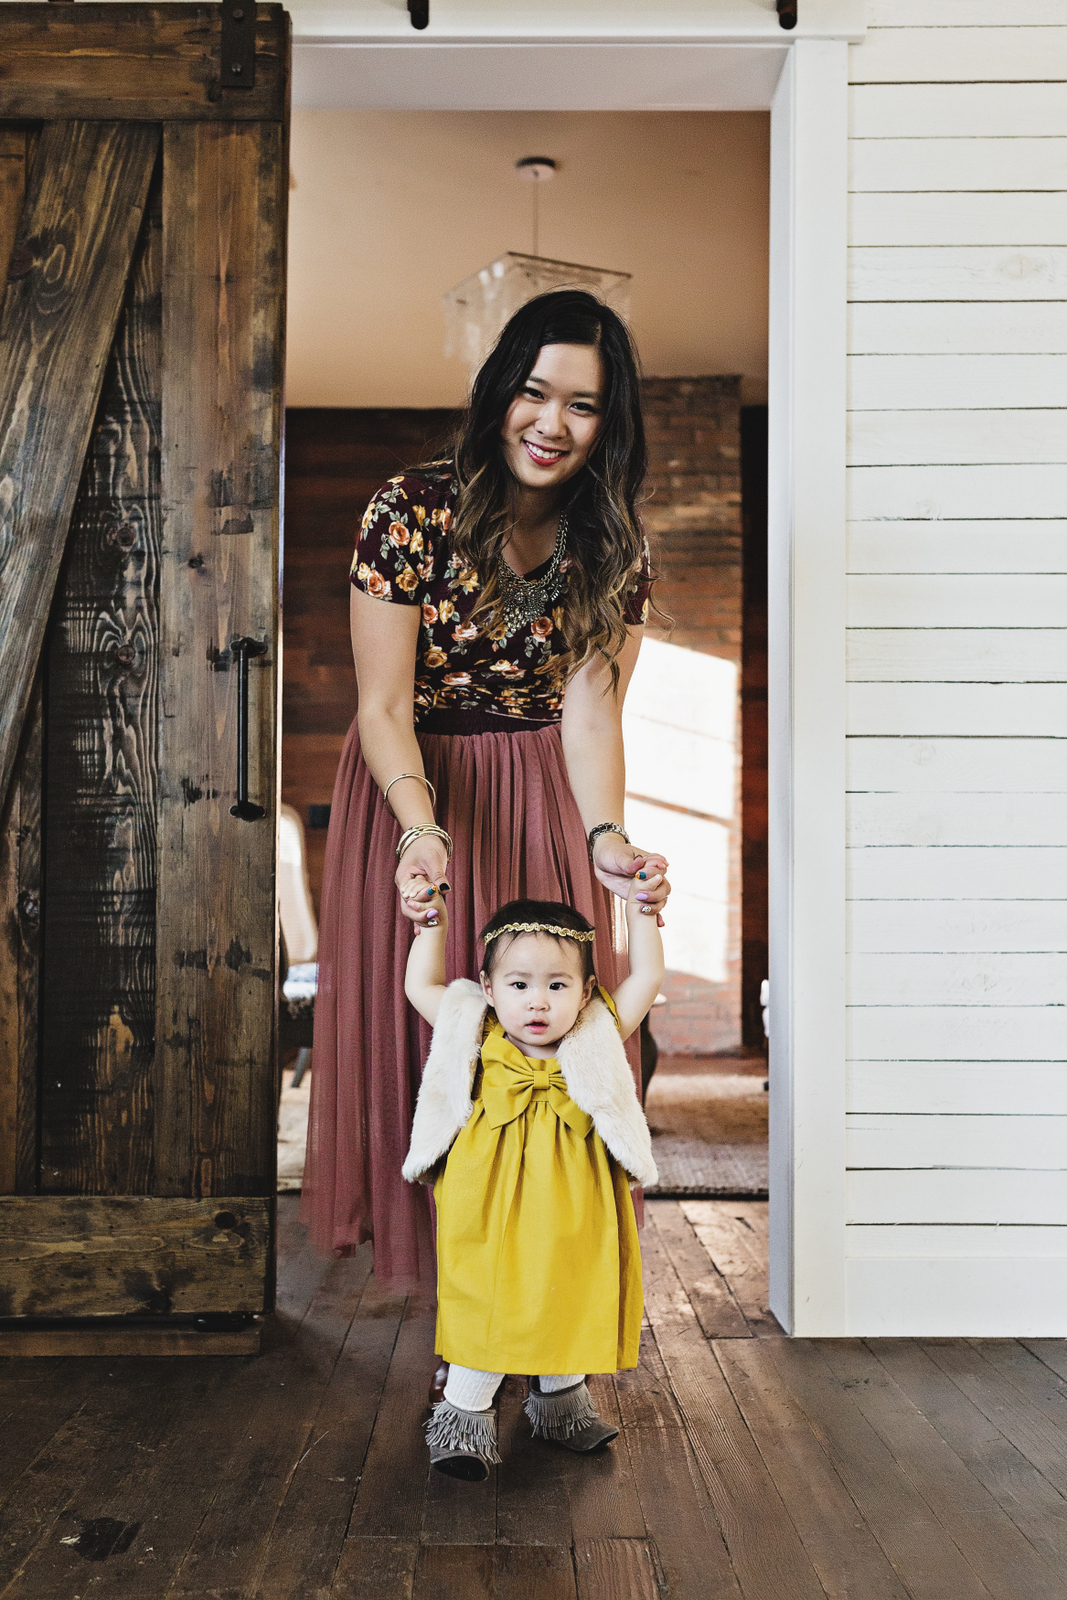 Florals and pretty dresses for a mommy and me outfit